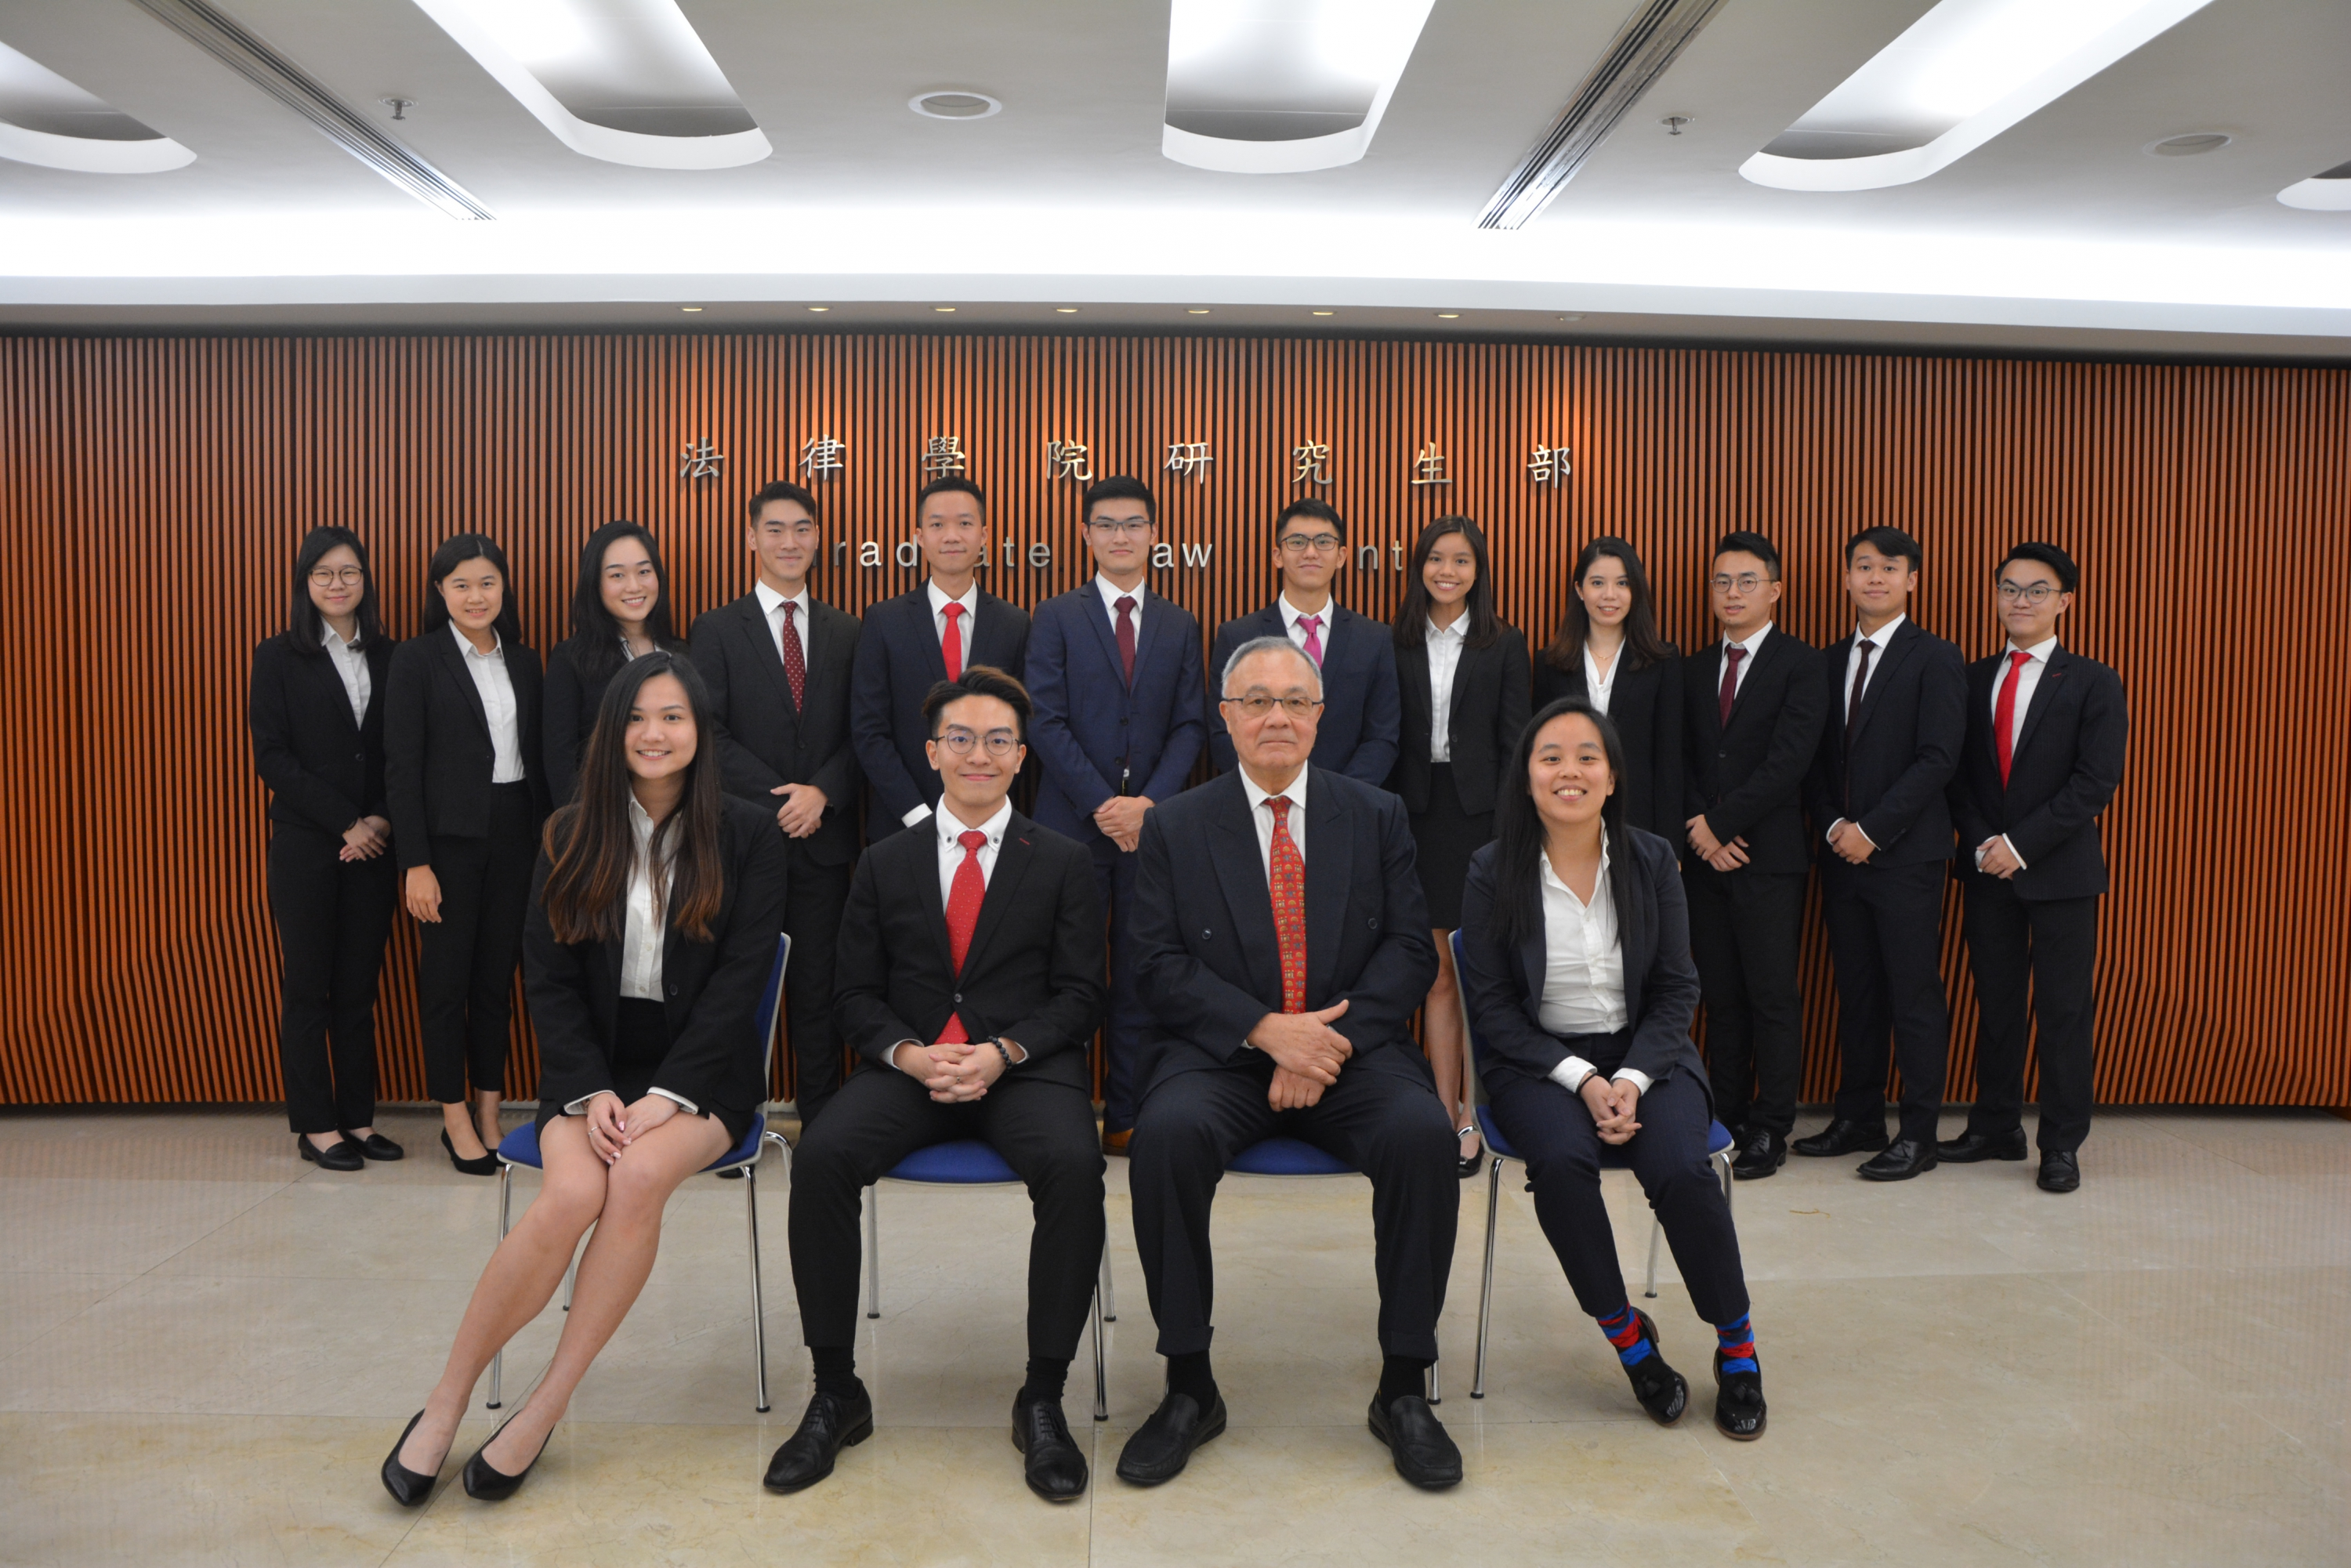 CUHK LAW team and the Faculty Coach, Prof. Peter Rhodes (2nd right, front row)